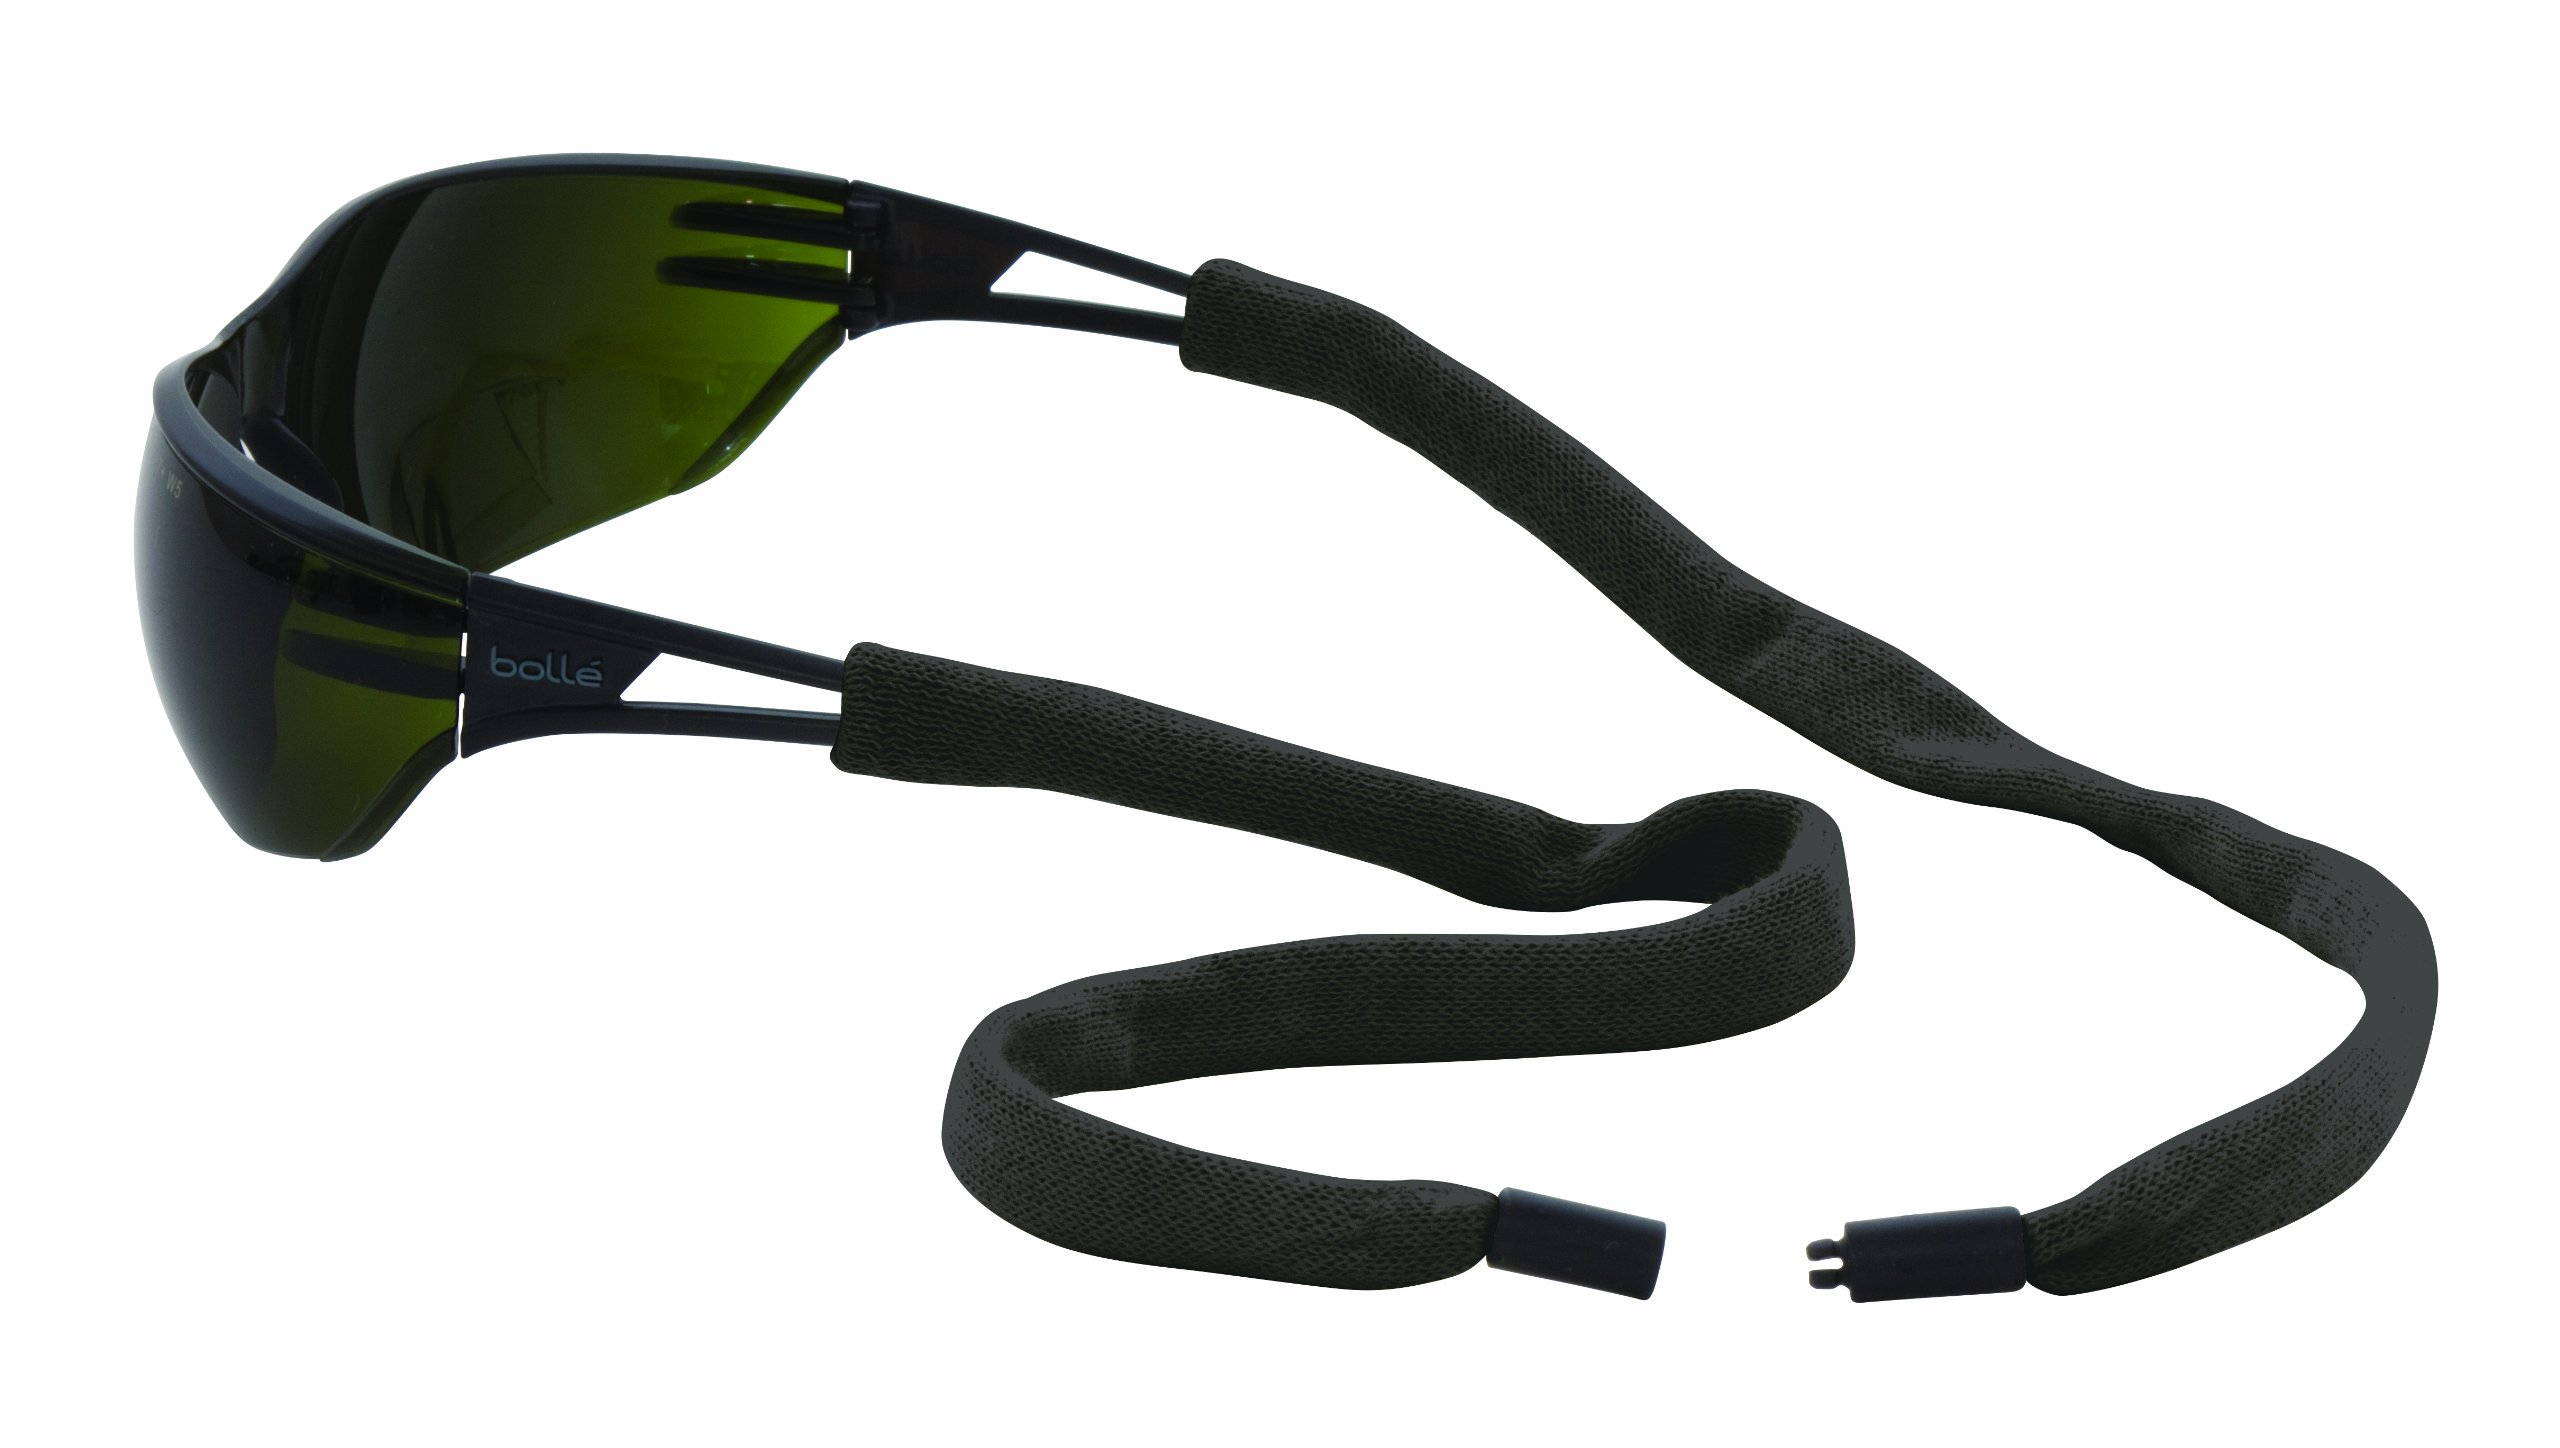 Chums Safety 13002100k Flame Resistant Kevlar Eyewear Retainer with Single Breakaway, Black (Pack of 6) by Chums